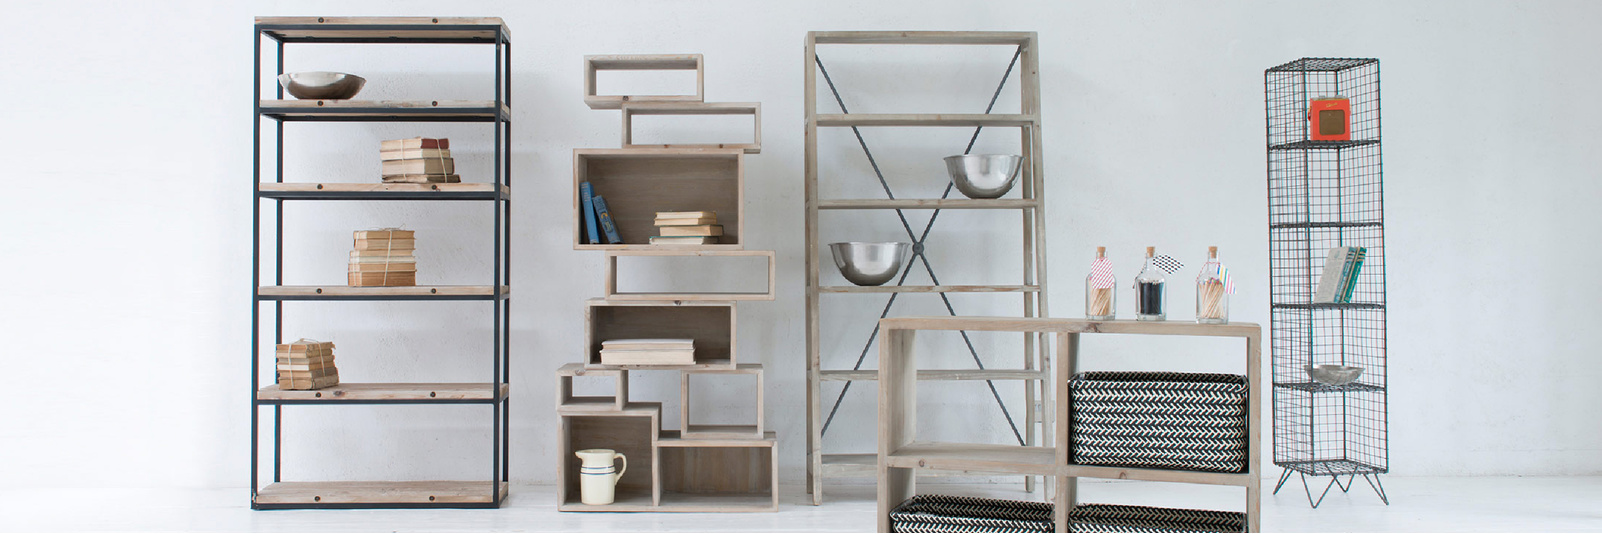 Range of free standing shelves